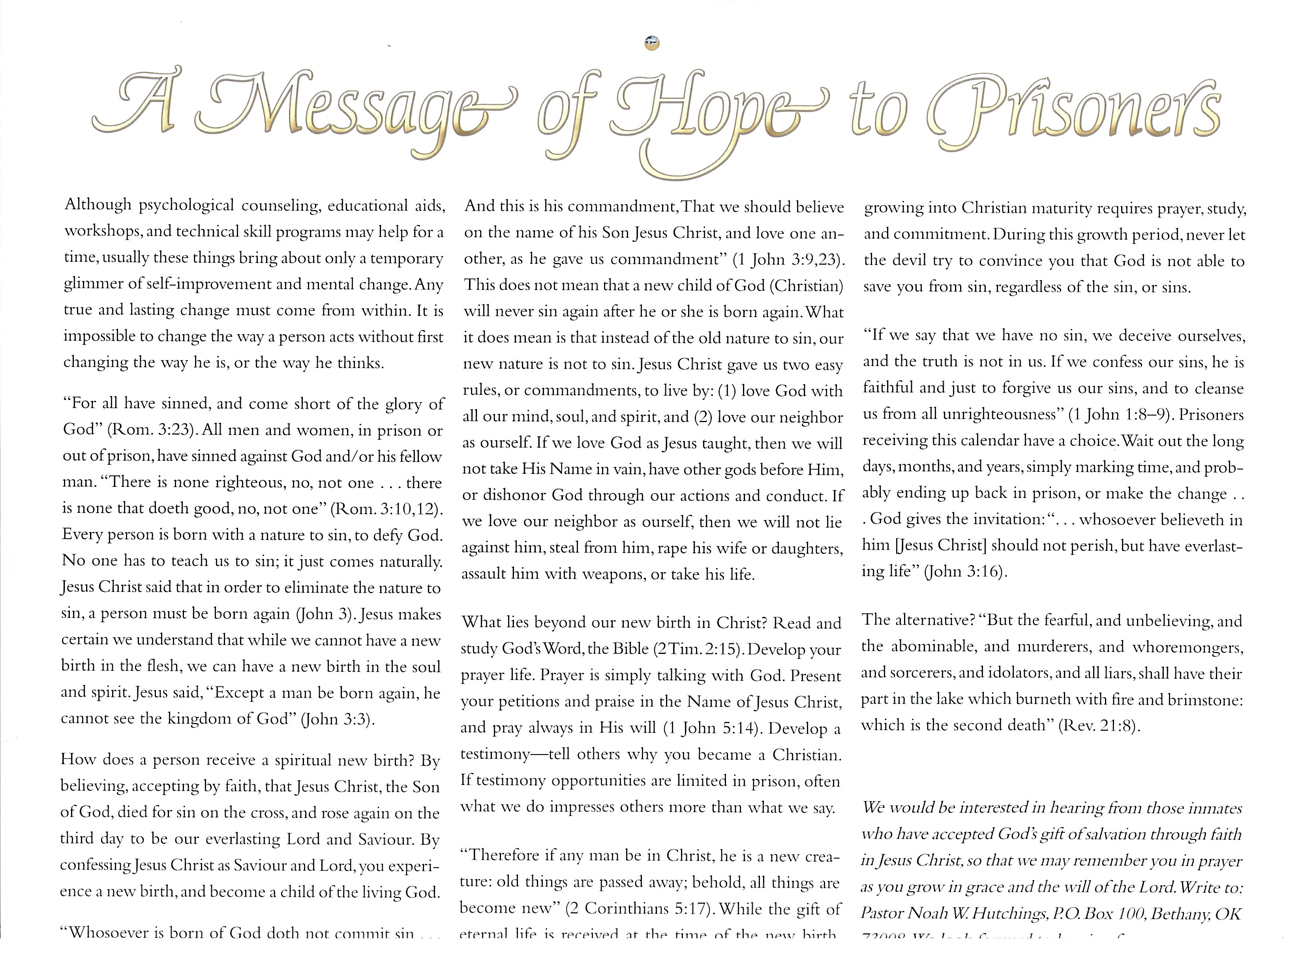 2012 Prophecy Calendar: A Message of Hope to Prisoners